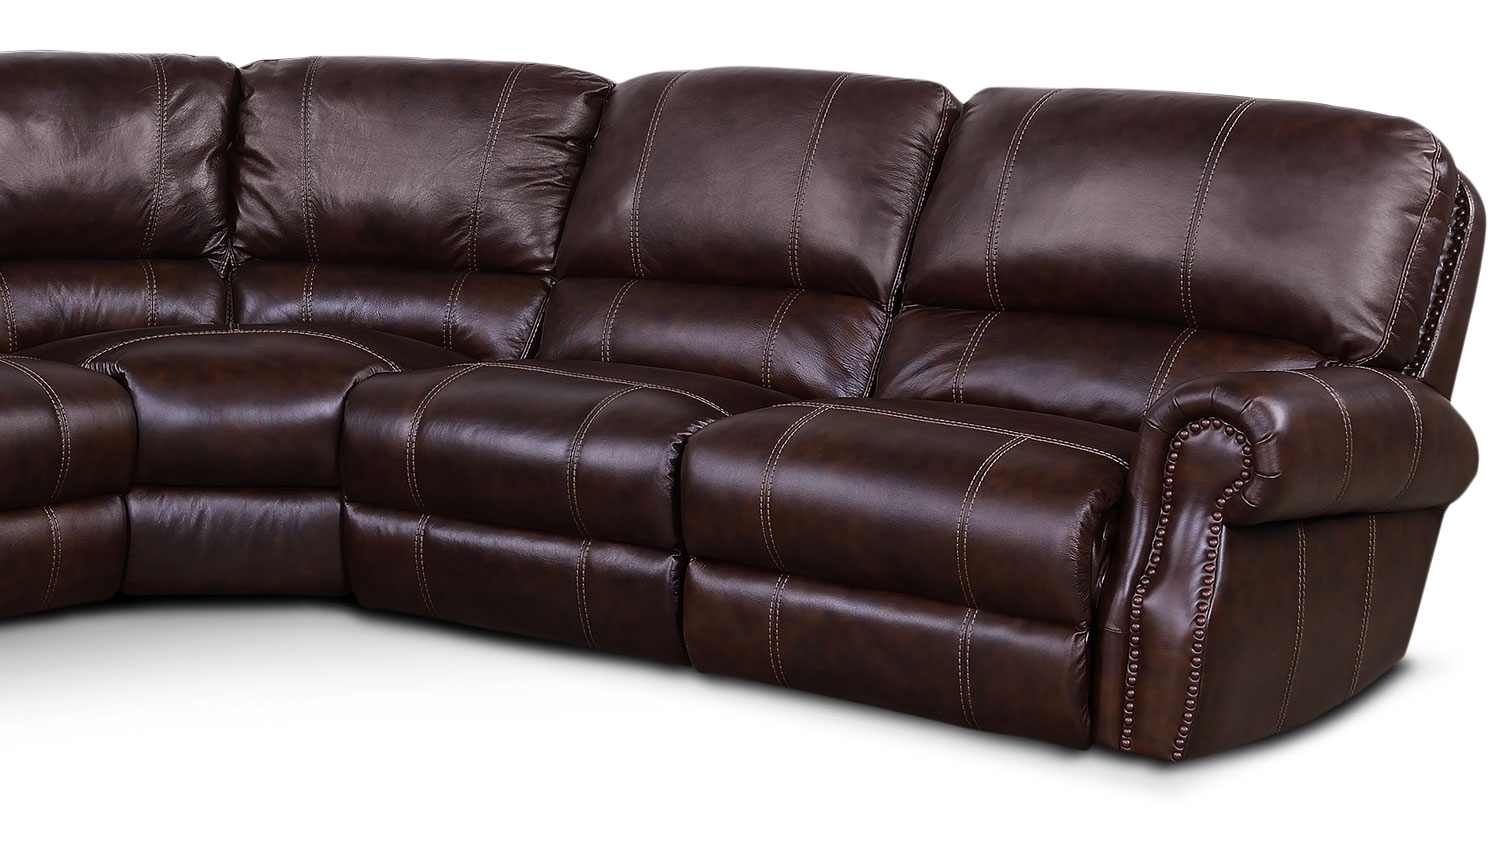 Dartmouth 6 Piece Power Reclining Sectional W/ Left Facing Chaise For Norfolk Chocolate 3 Piece Sectionals With Raf Chaise (Image 9 of 25)